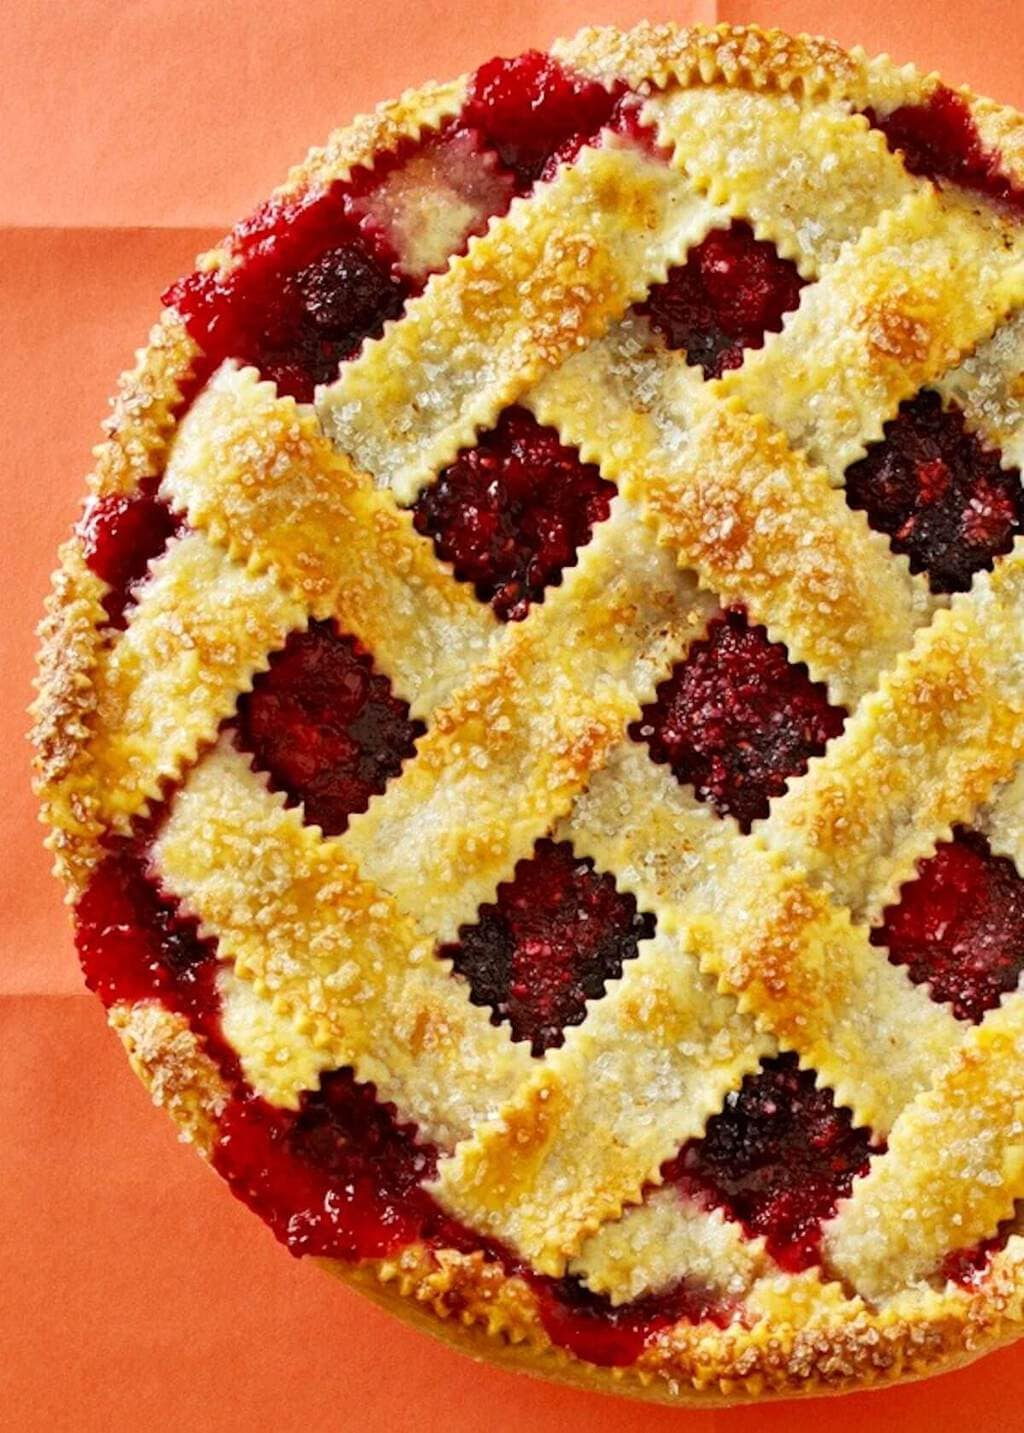 lattice top razzleberry pie on orange paper